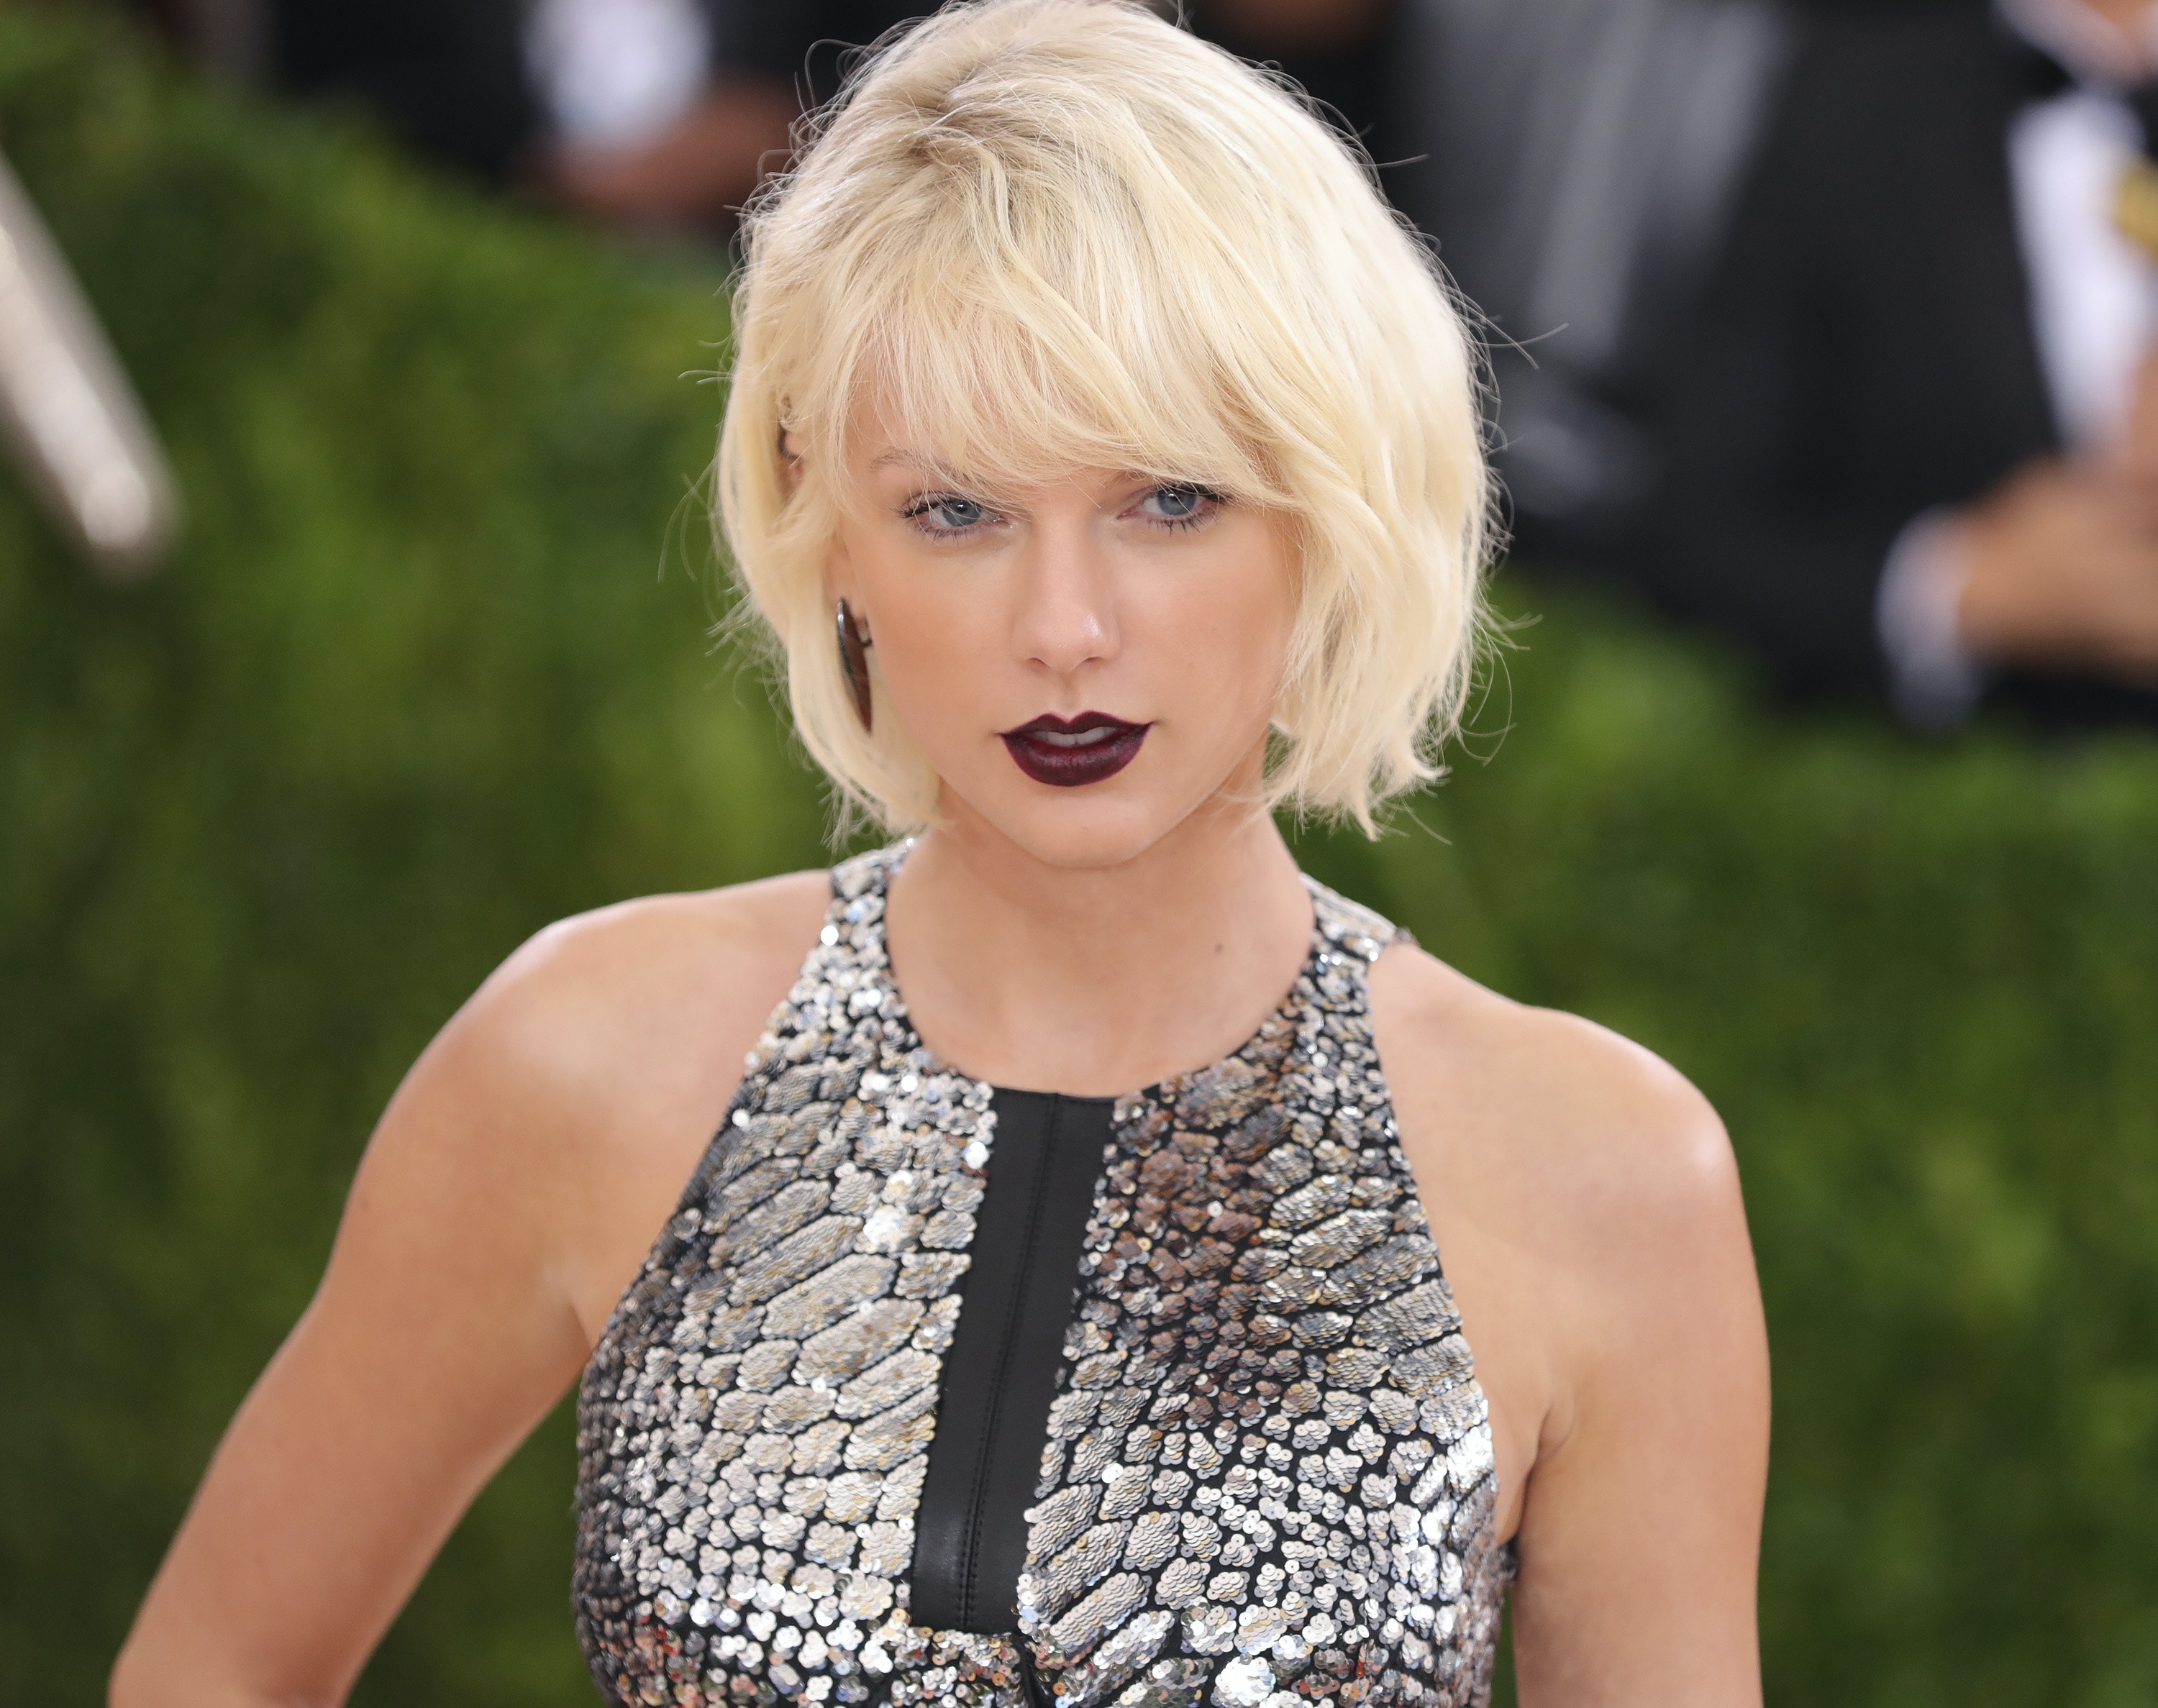 The 9 Craziest Taylor Swift Theories That You Need To Read